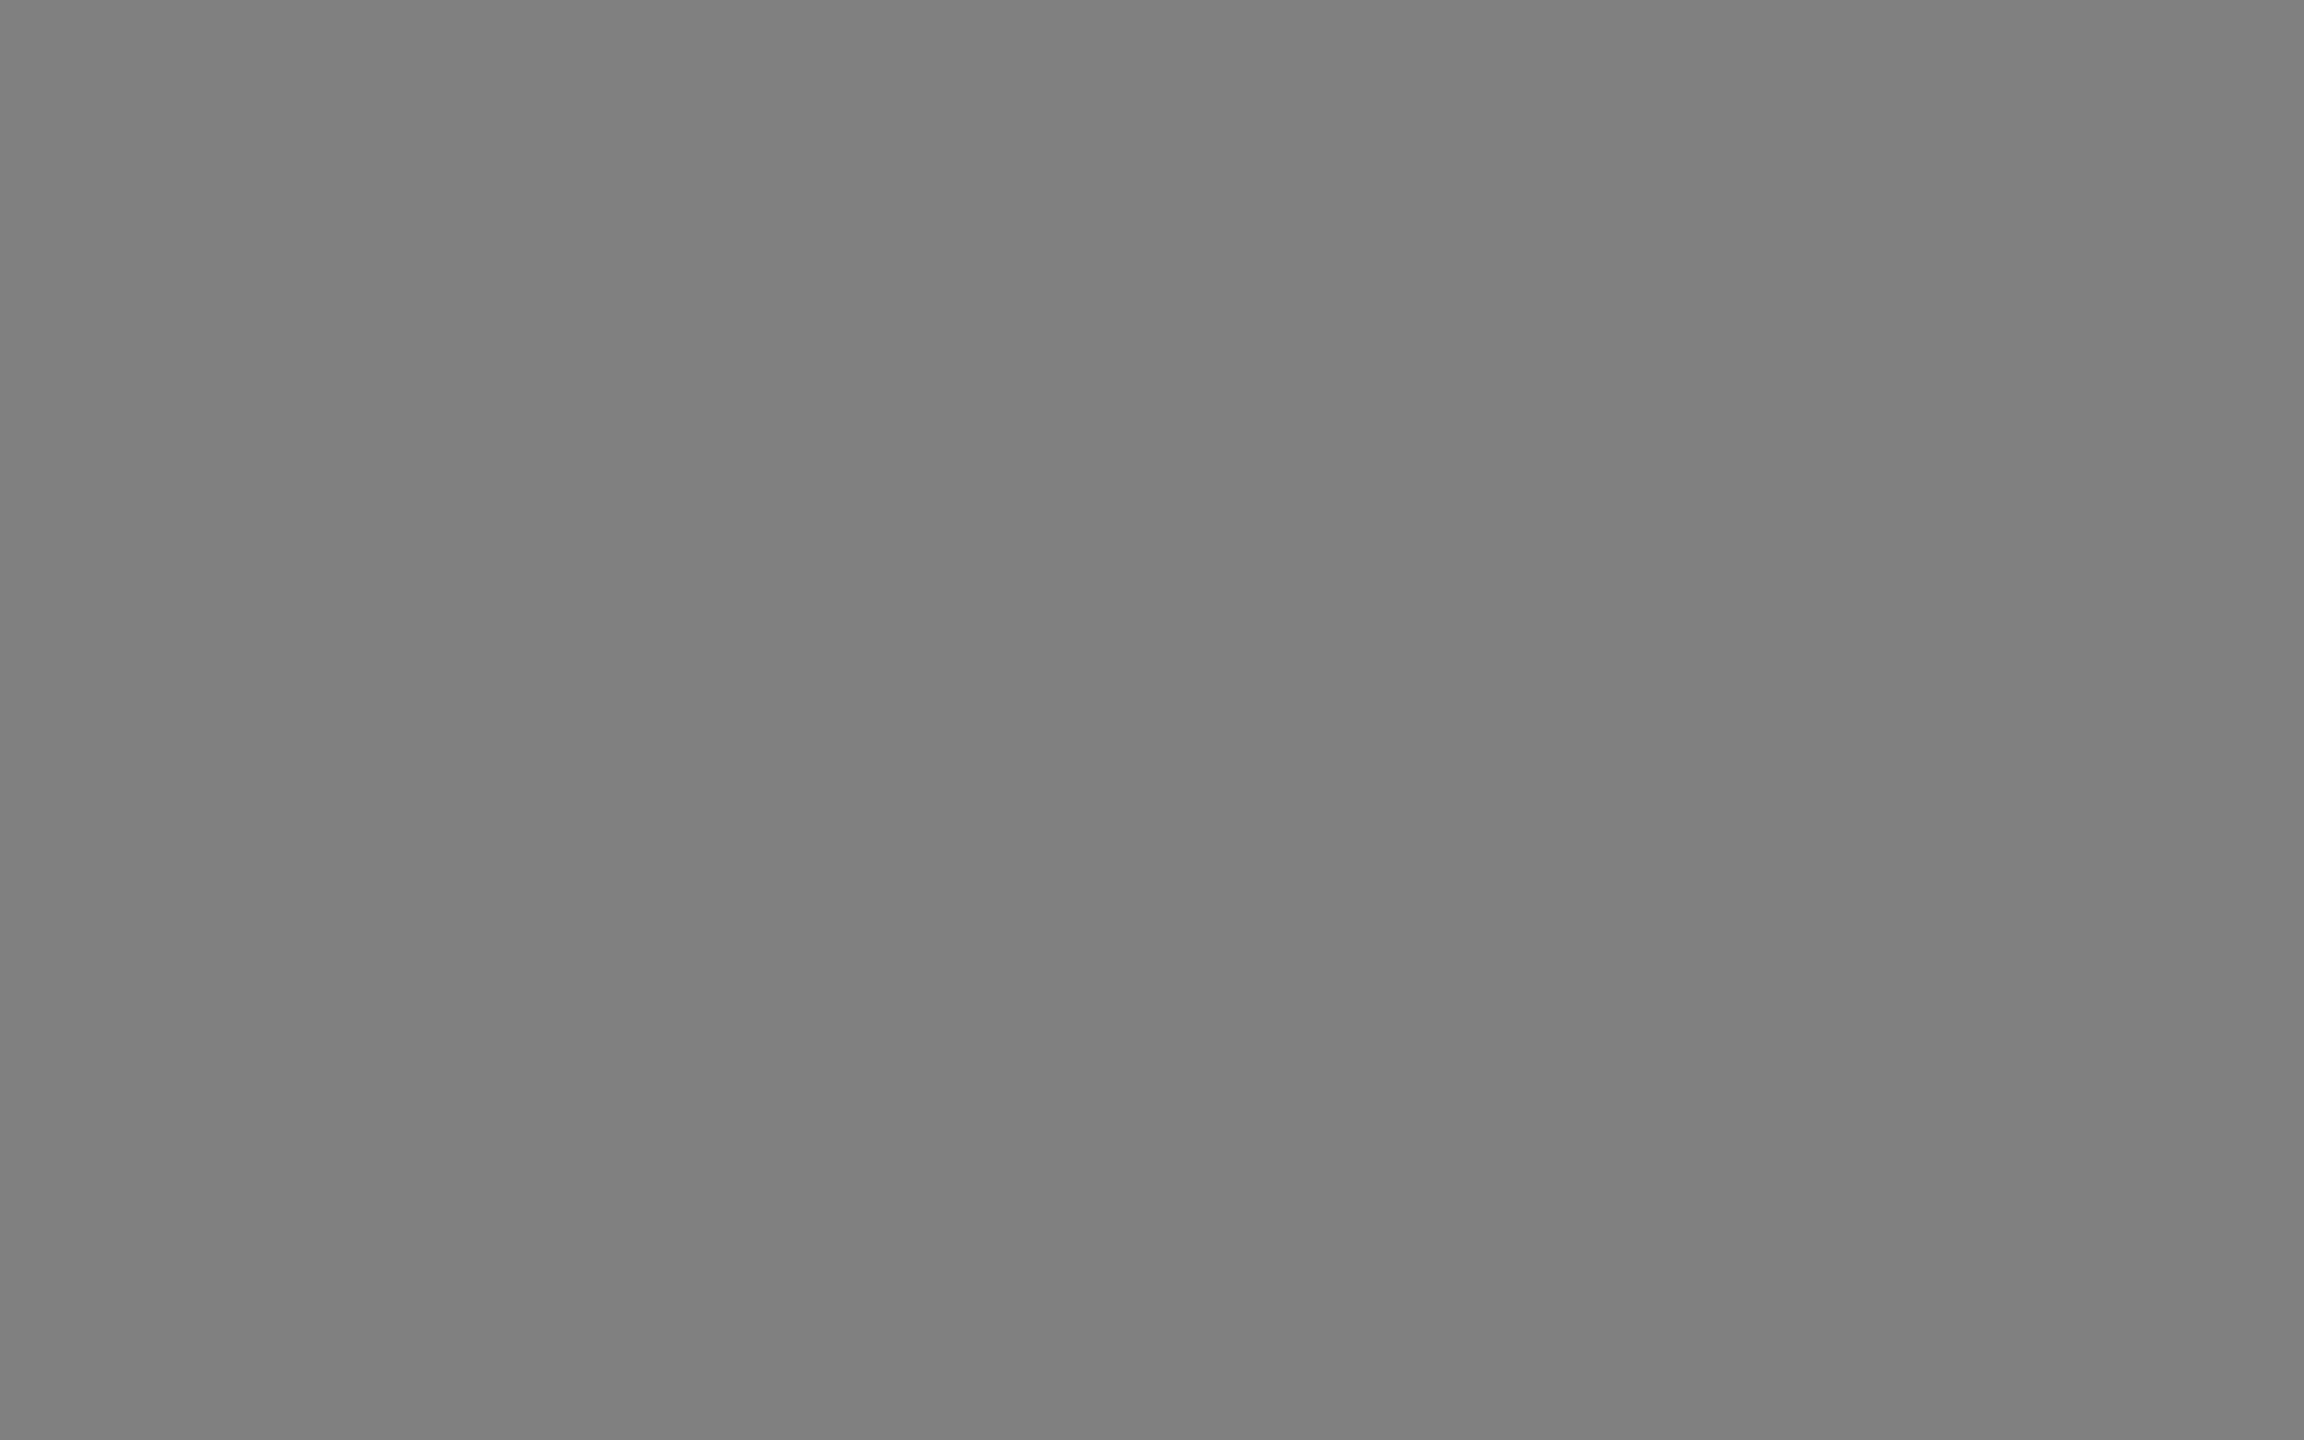 2304x1440 Trolley Grey Solid Color Background